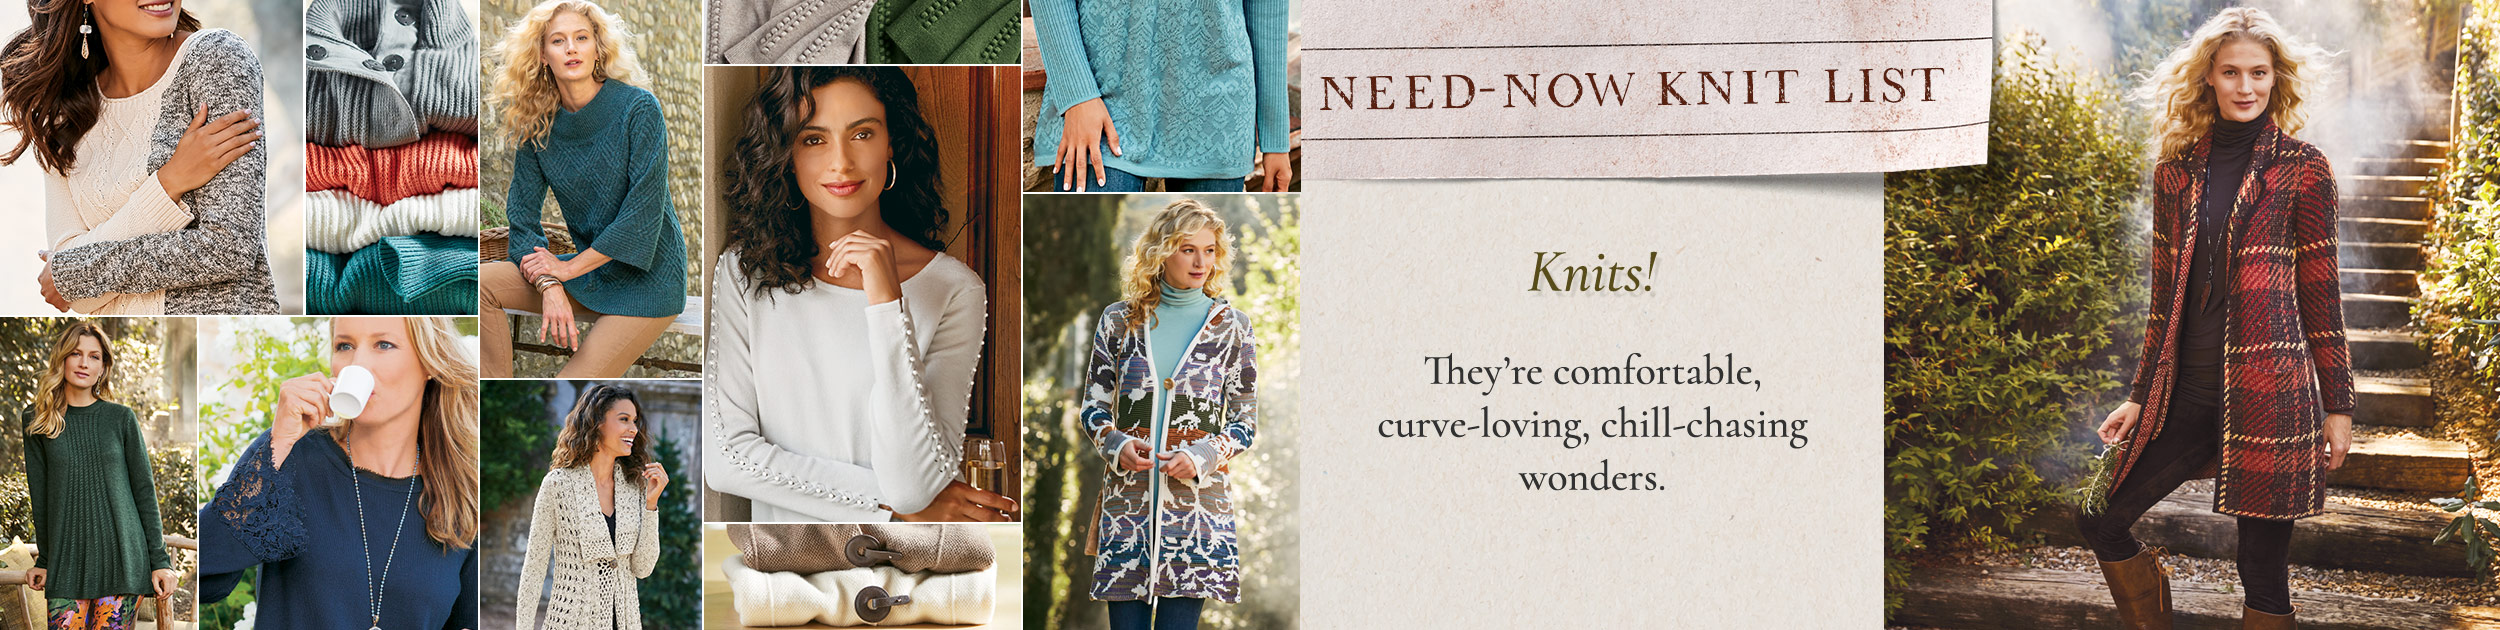 Need-Now Knit List